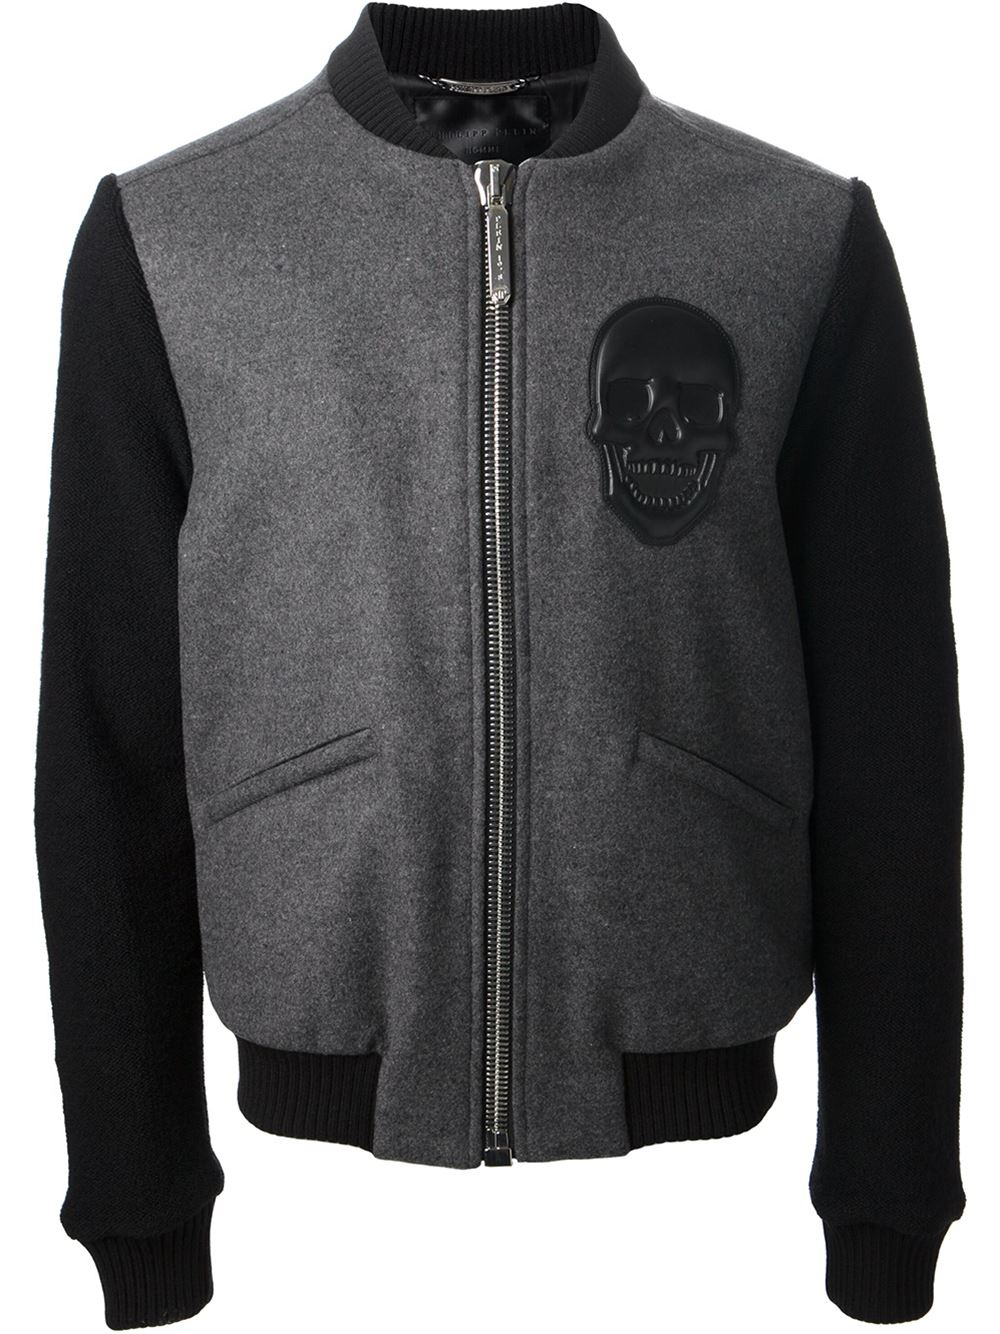 philipp plein skull patch jacket in gray for men lyst. Black Bedroom Furniture Sets. Home Design Ideas